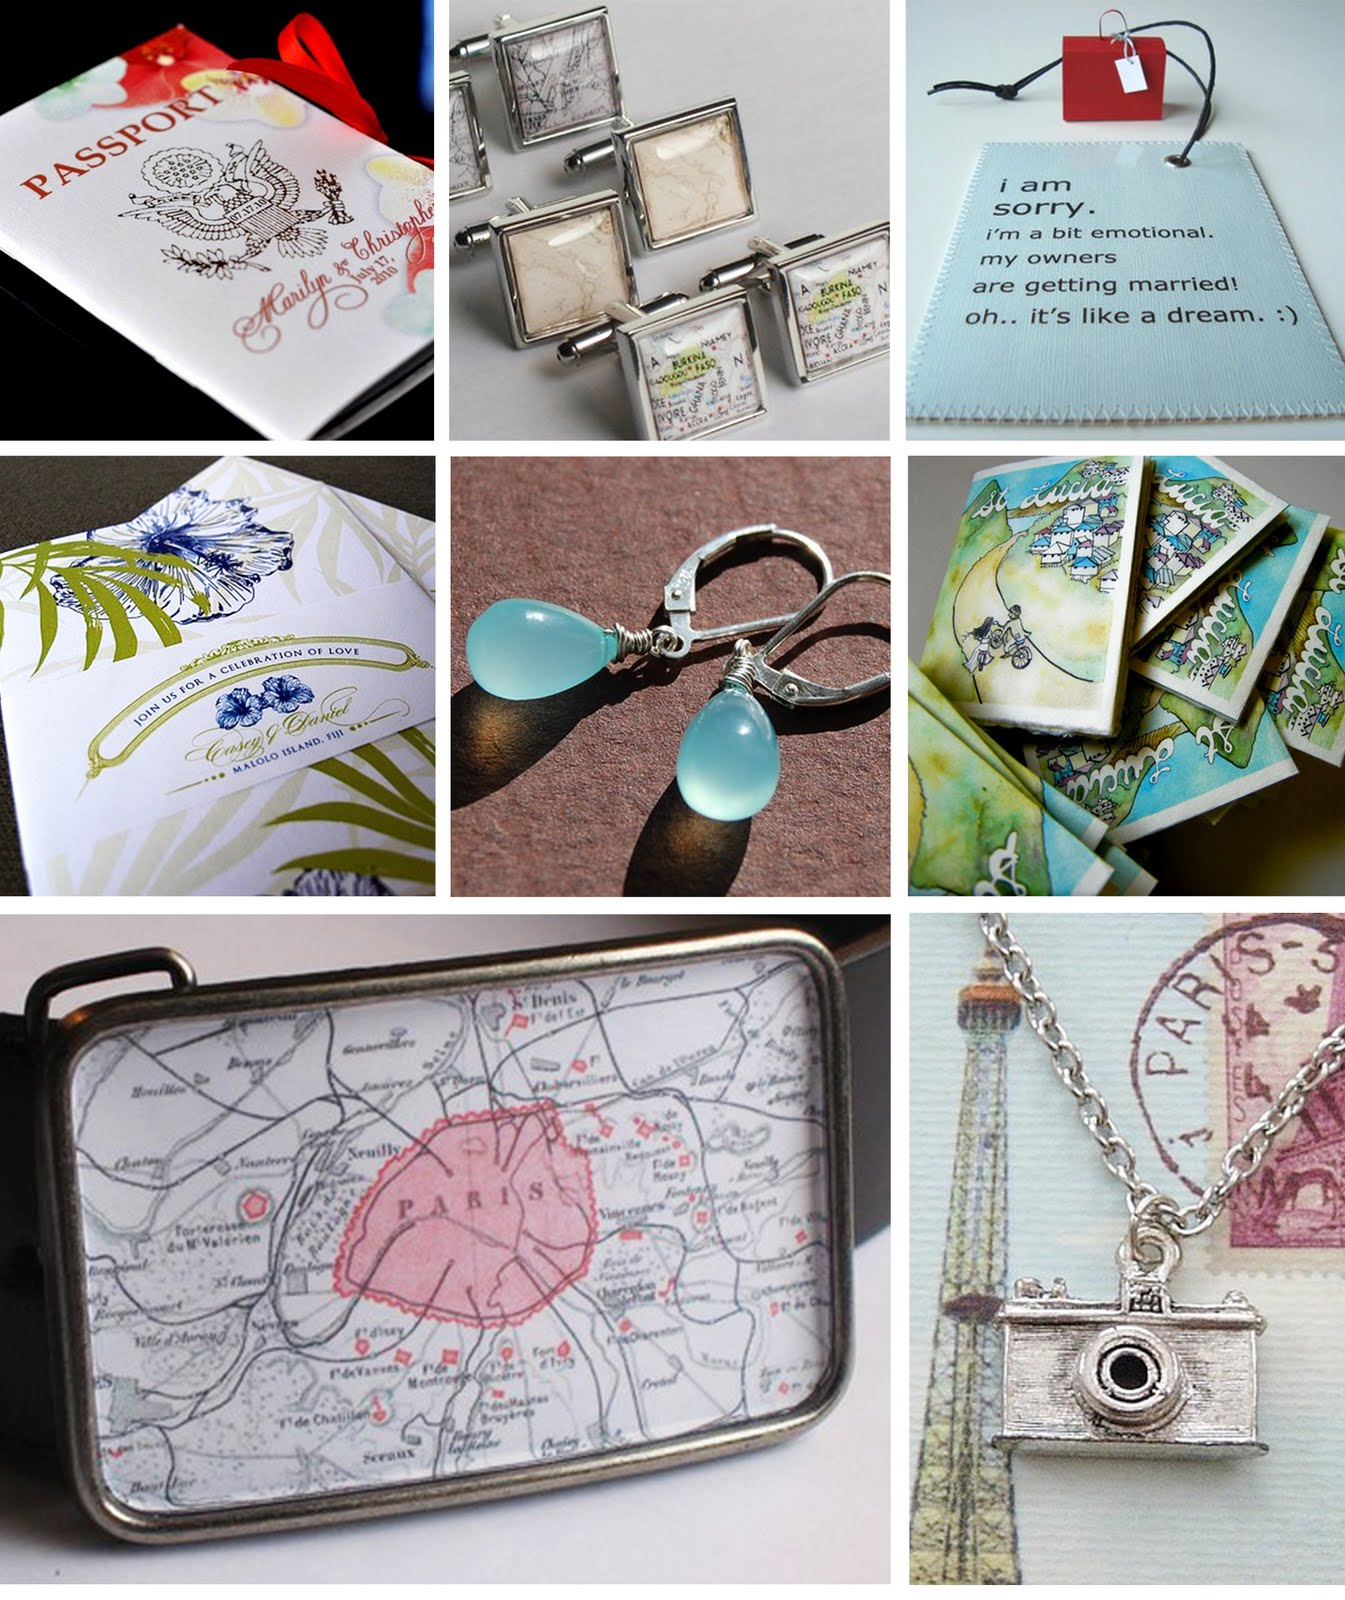 items for a destination wedding. Gifts for your bridal party ...